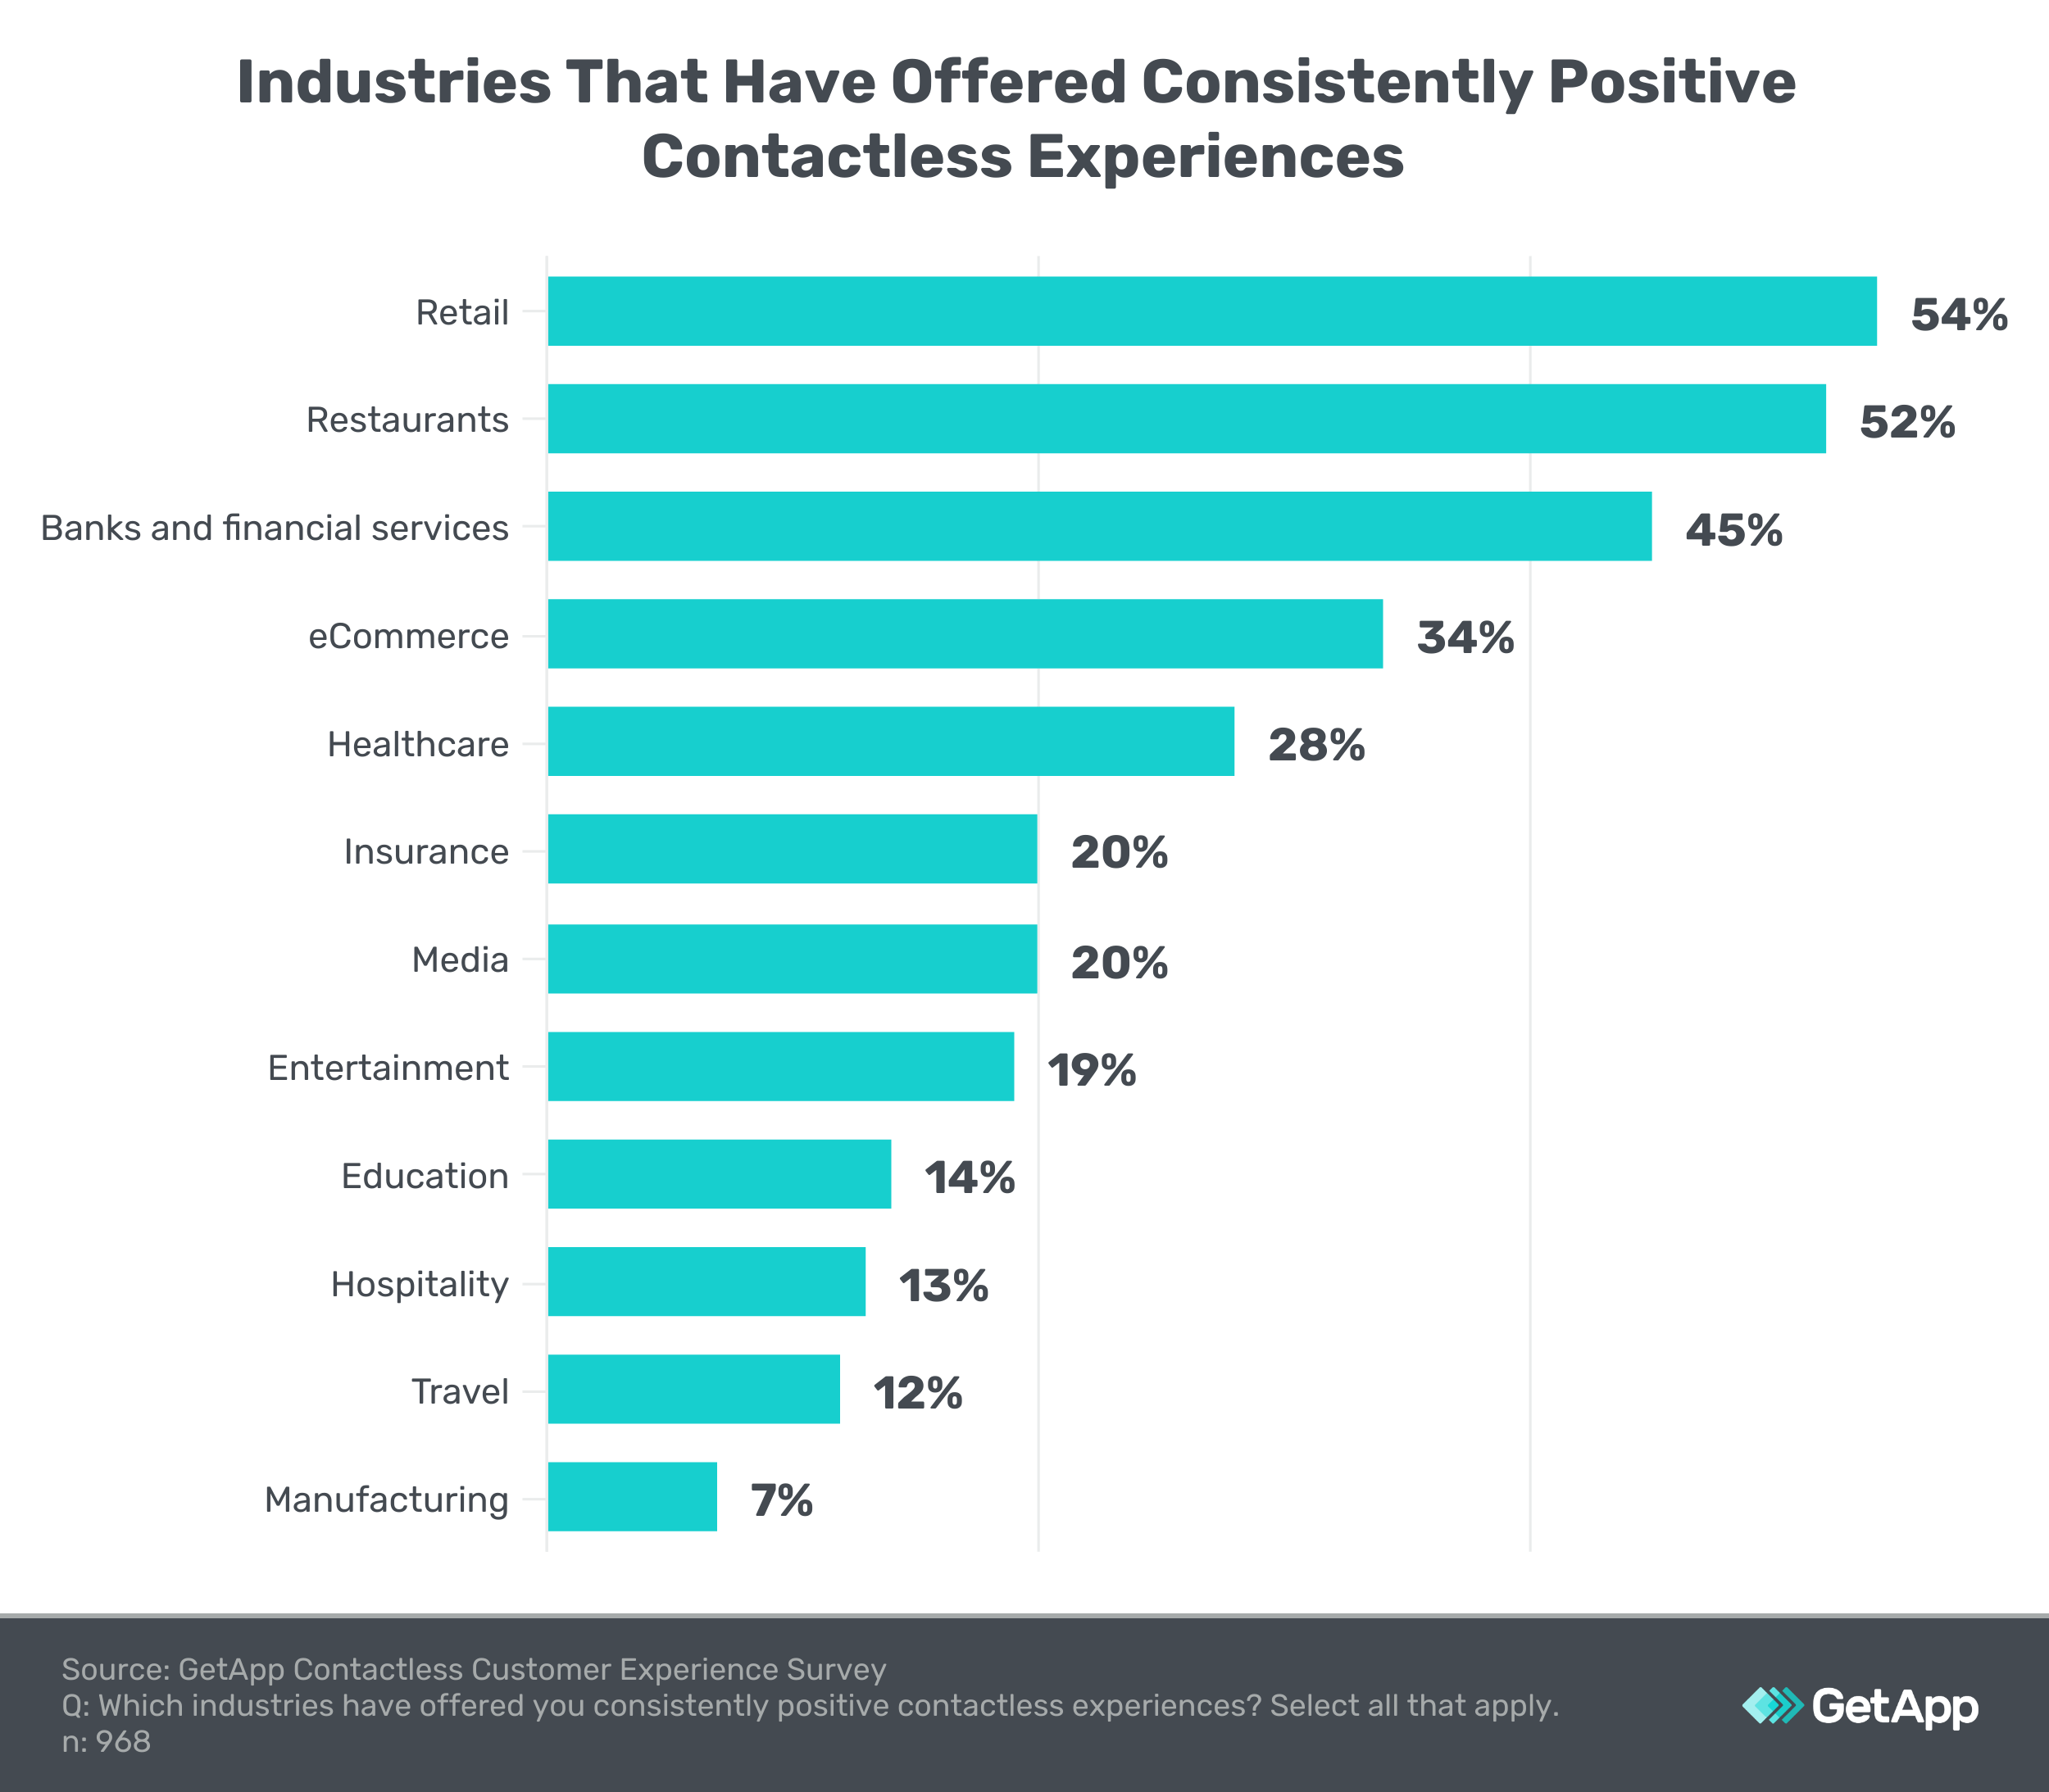 bar chart showing which industries offer quality contactless experiences